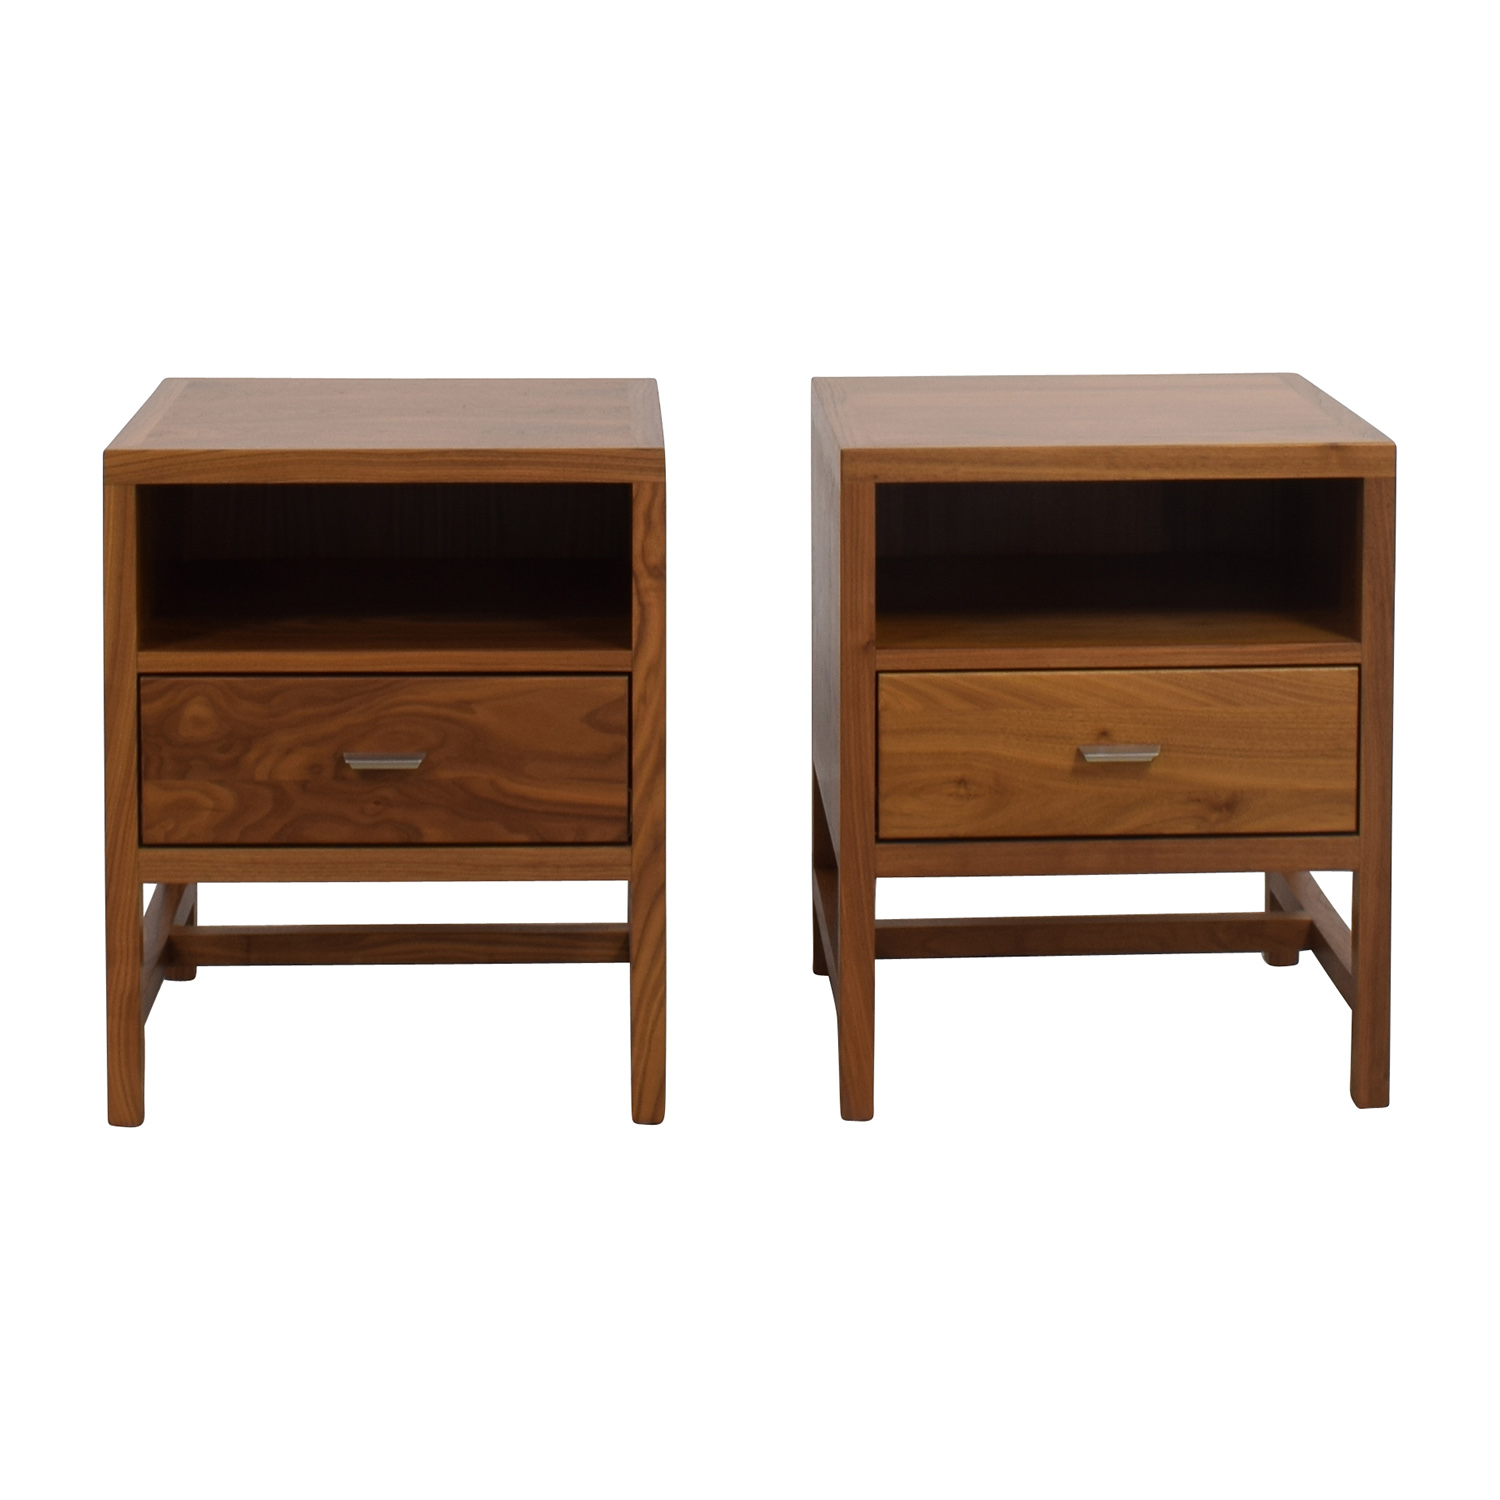 Room & Board Room & Board Berkeley Walnut Nightstands End Tables